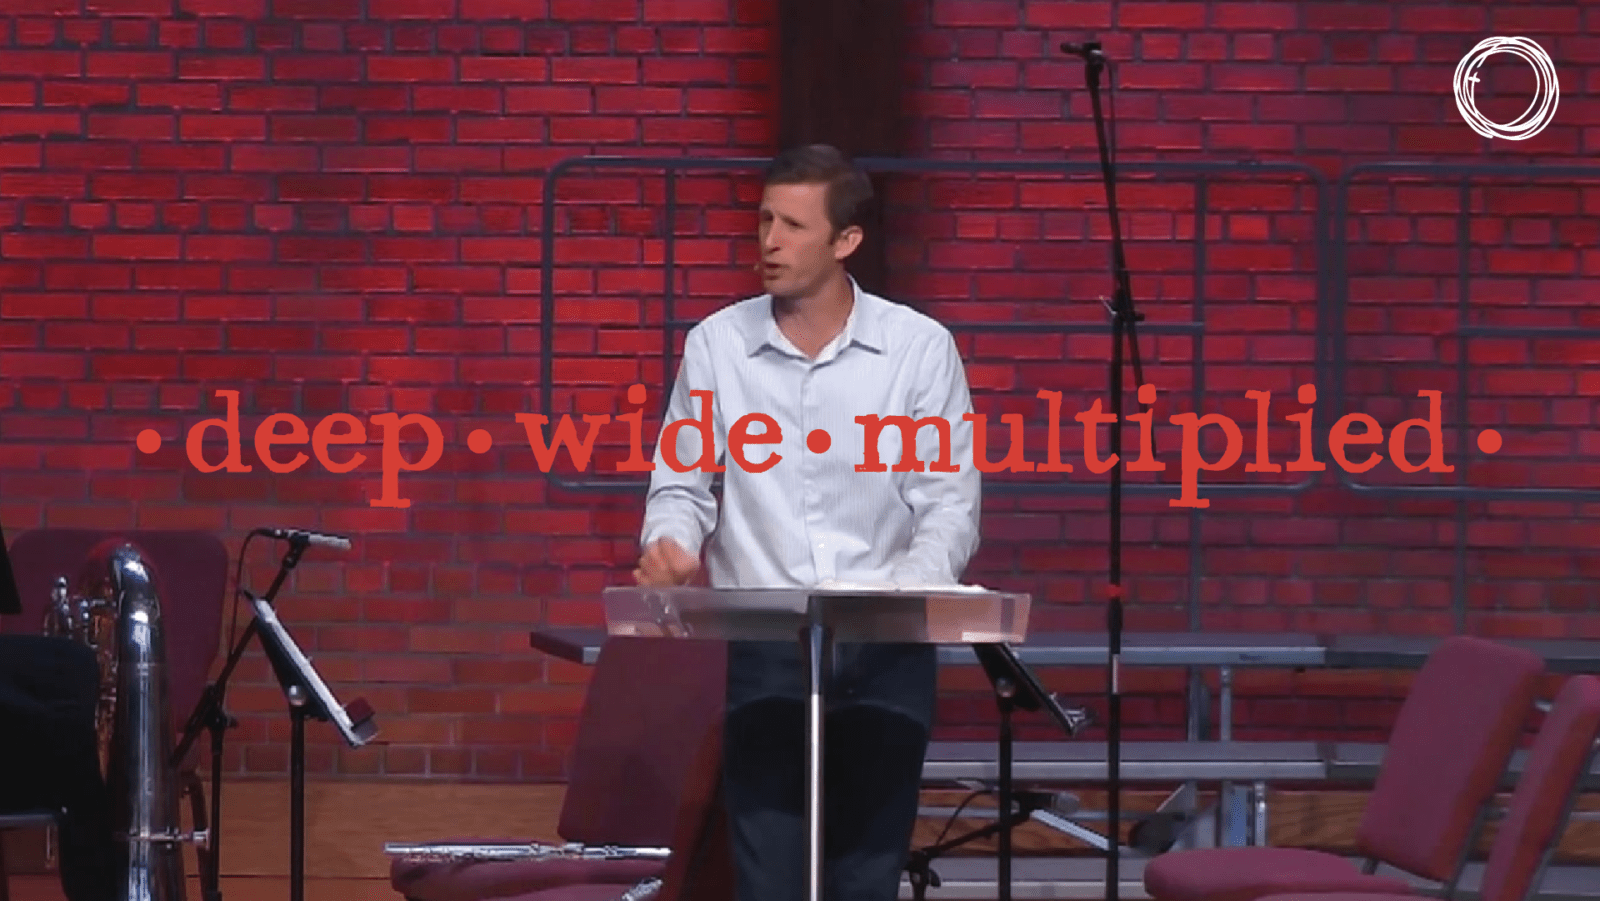 Deep  |  Wide  |  Multiplied